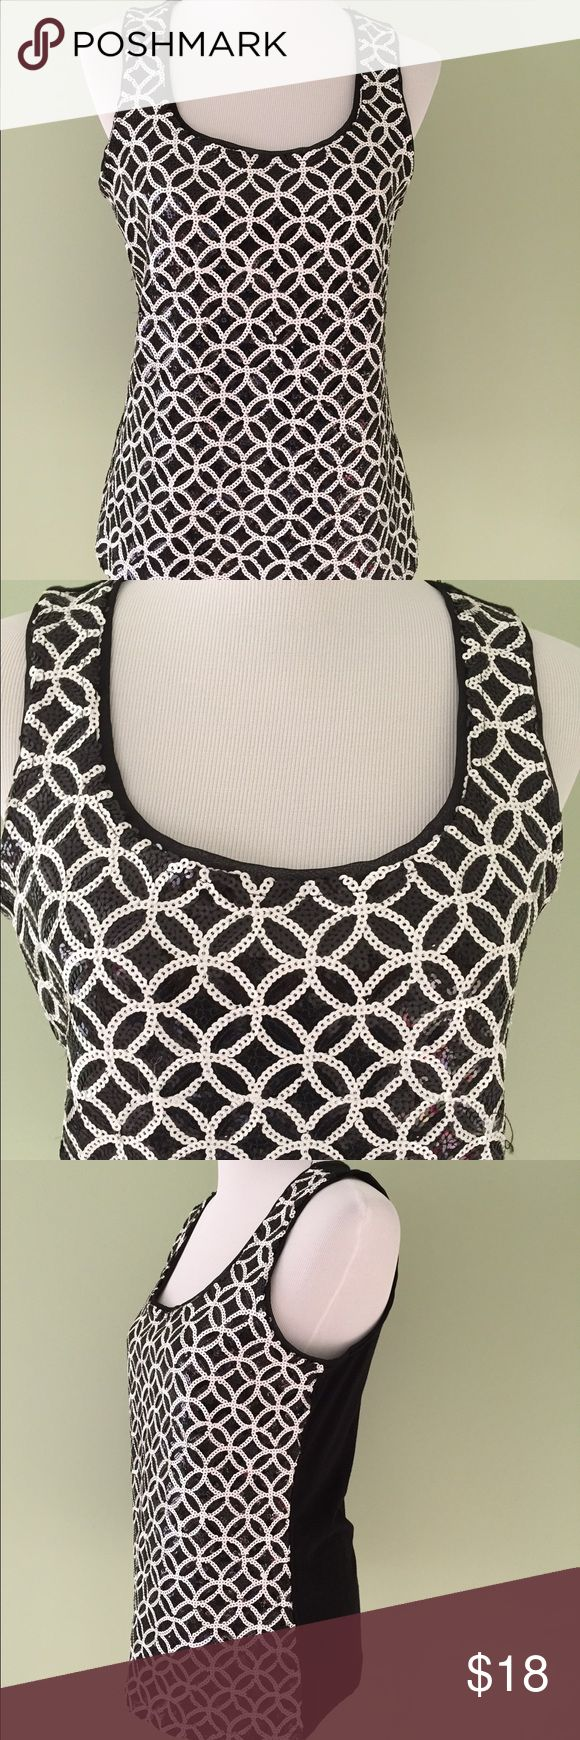 "White House Black Market Sequin Tank Top Medium WHBM White House Black Market Black and White Sequin Tank Top Very pretty and perfect for dressing up for an evening out. Size Medium Armpit to armpit is 17"" Length from shoulder to hem is 24.5"" Excellent condition. No stains or flaws. White House Black Market Tops Tank Tops"